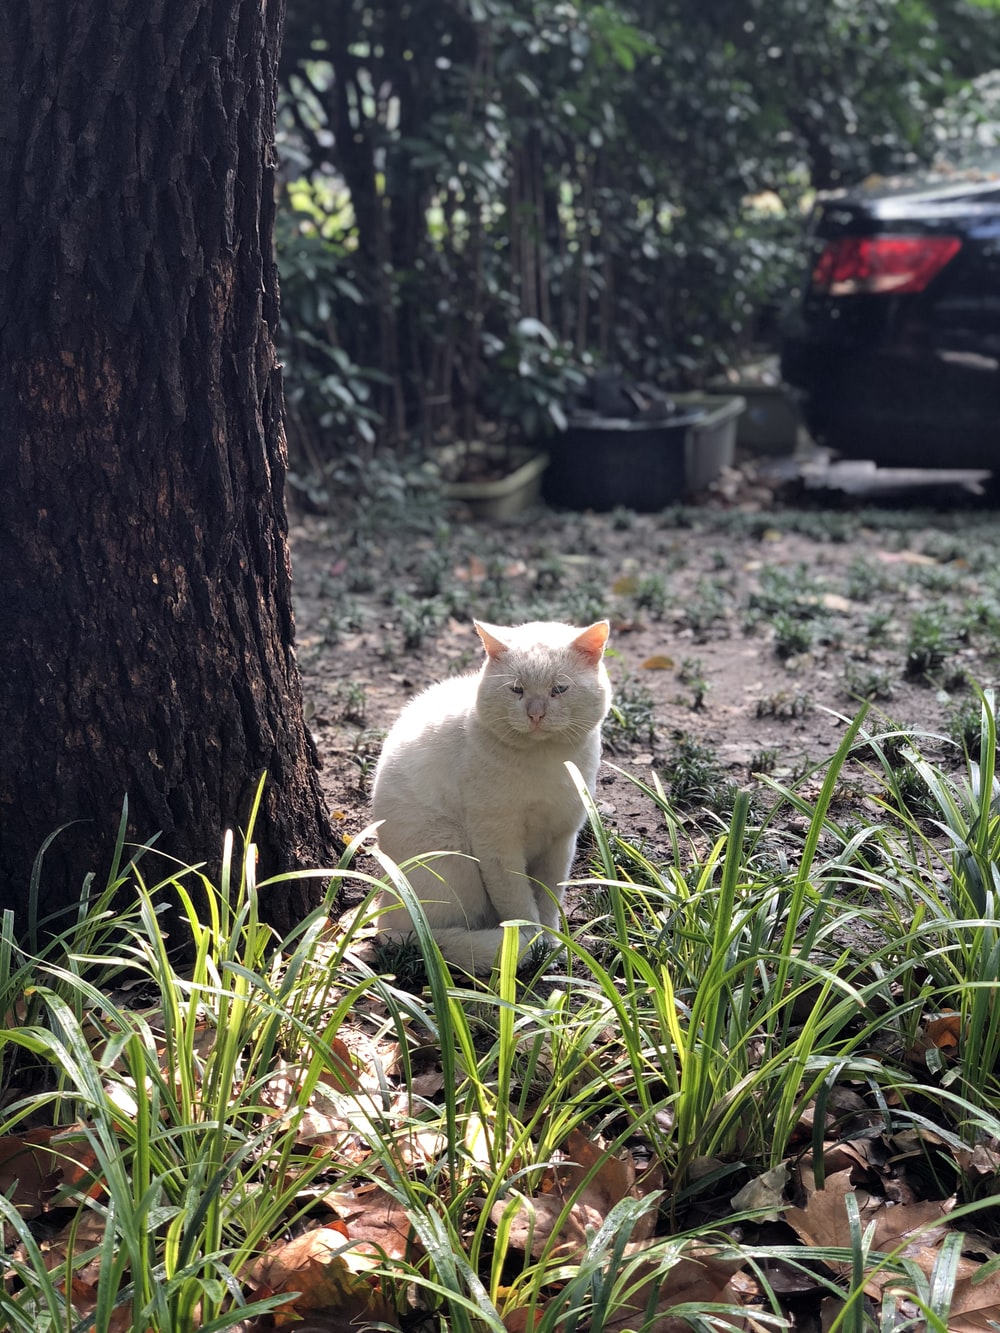 white cat sitting beside tree near parked car